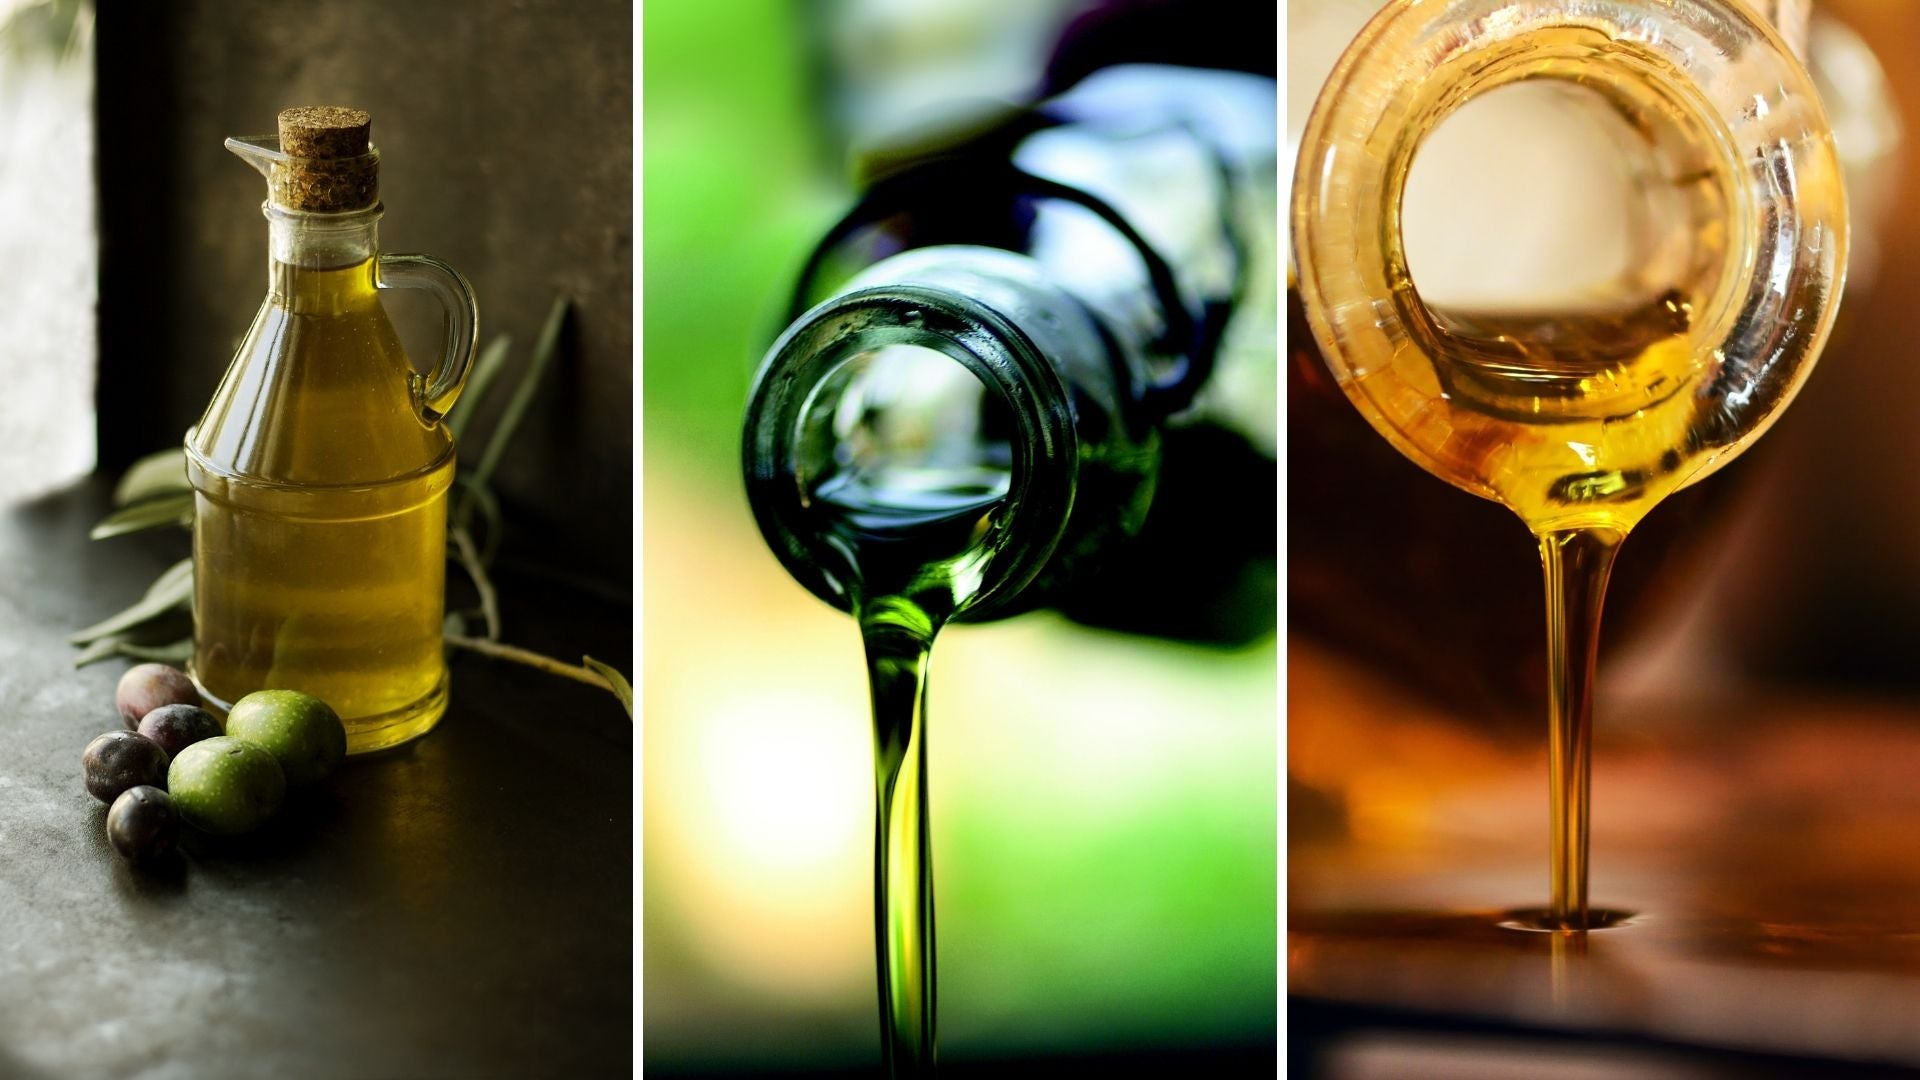 """Oil vs ghee, oil or ghee, ghee good for cholesterol, """"Traditonal method of preparing GHEE"""", """"Bilona method for making ghee"""", """"Organic A2 Ghee"""", """"Great patience"""", """"Huge labour work"""", """"The process of making Ghee"""", """"Long process of making Ghee"""", """"Ghee for all"""", """"Ghee is varsatile in nature"""", """"Children can consume ghee in little proportion"""", """"Health benefits of eating ghee daily"""", """"Ghee improves your overall health"""""""